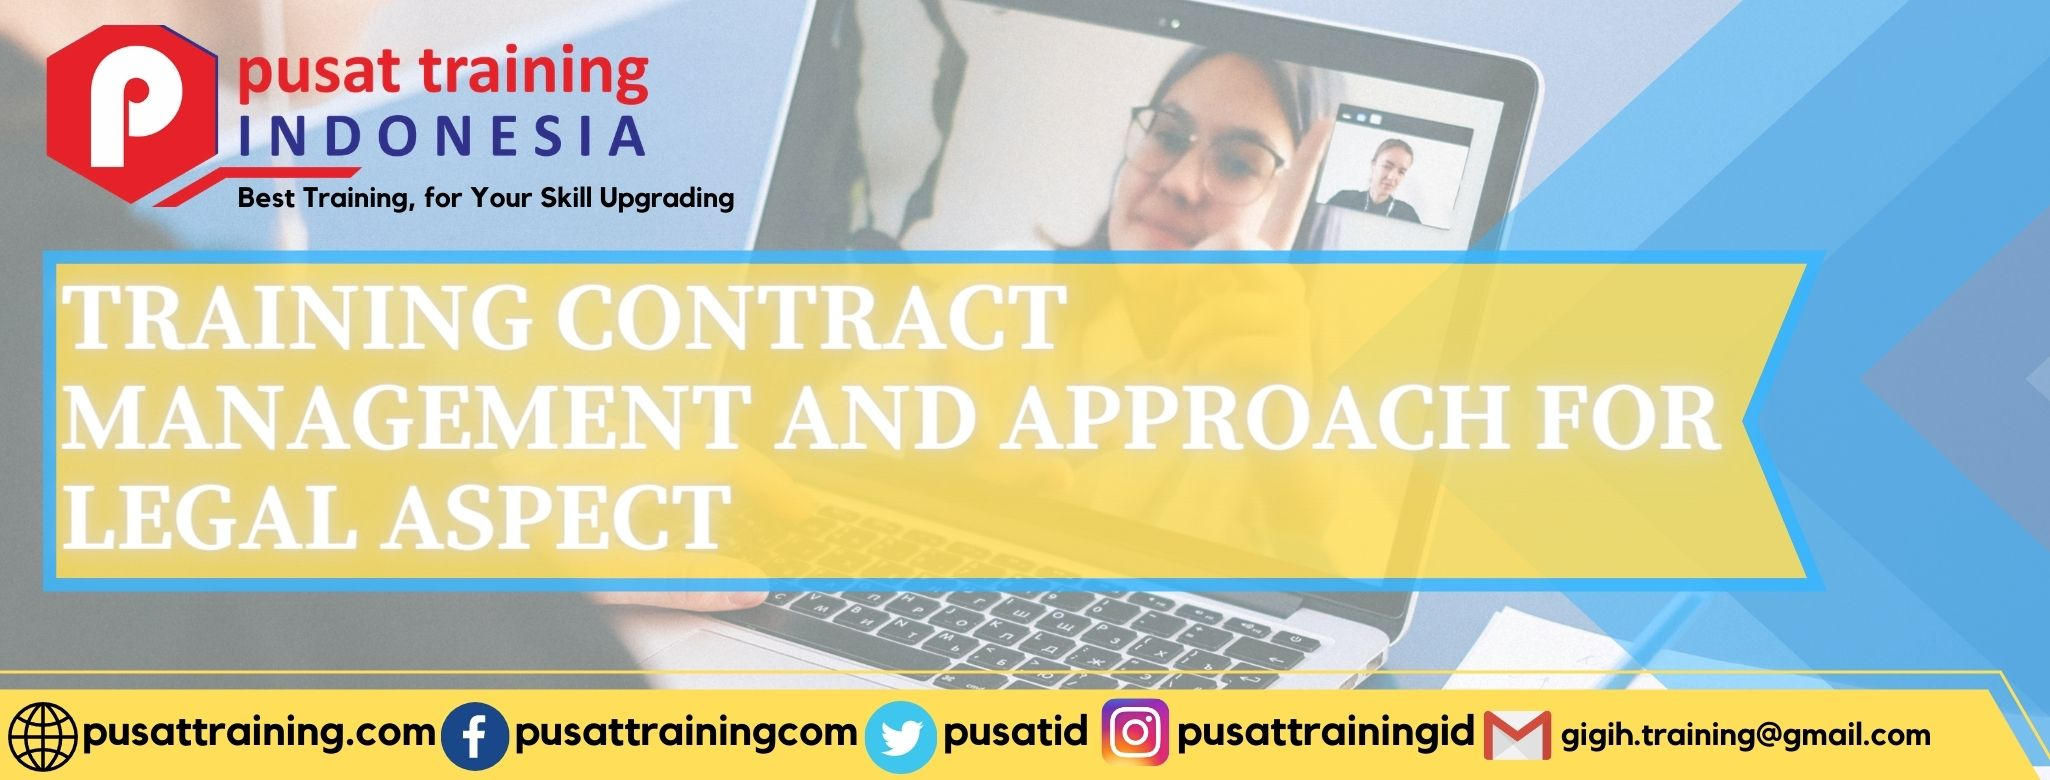 TRAINING CONTRACT MANAGEMENT AND APPROACH FOR LEGAL ASPECT